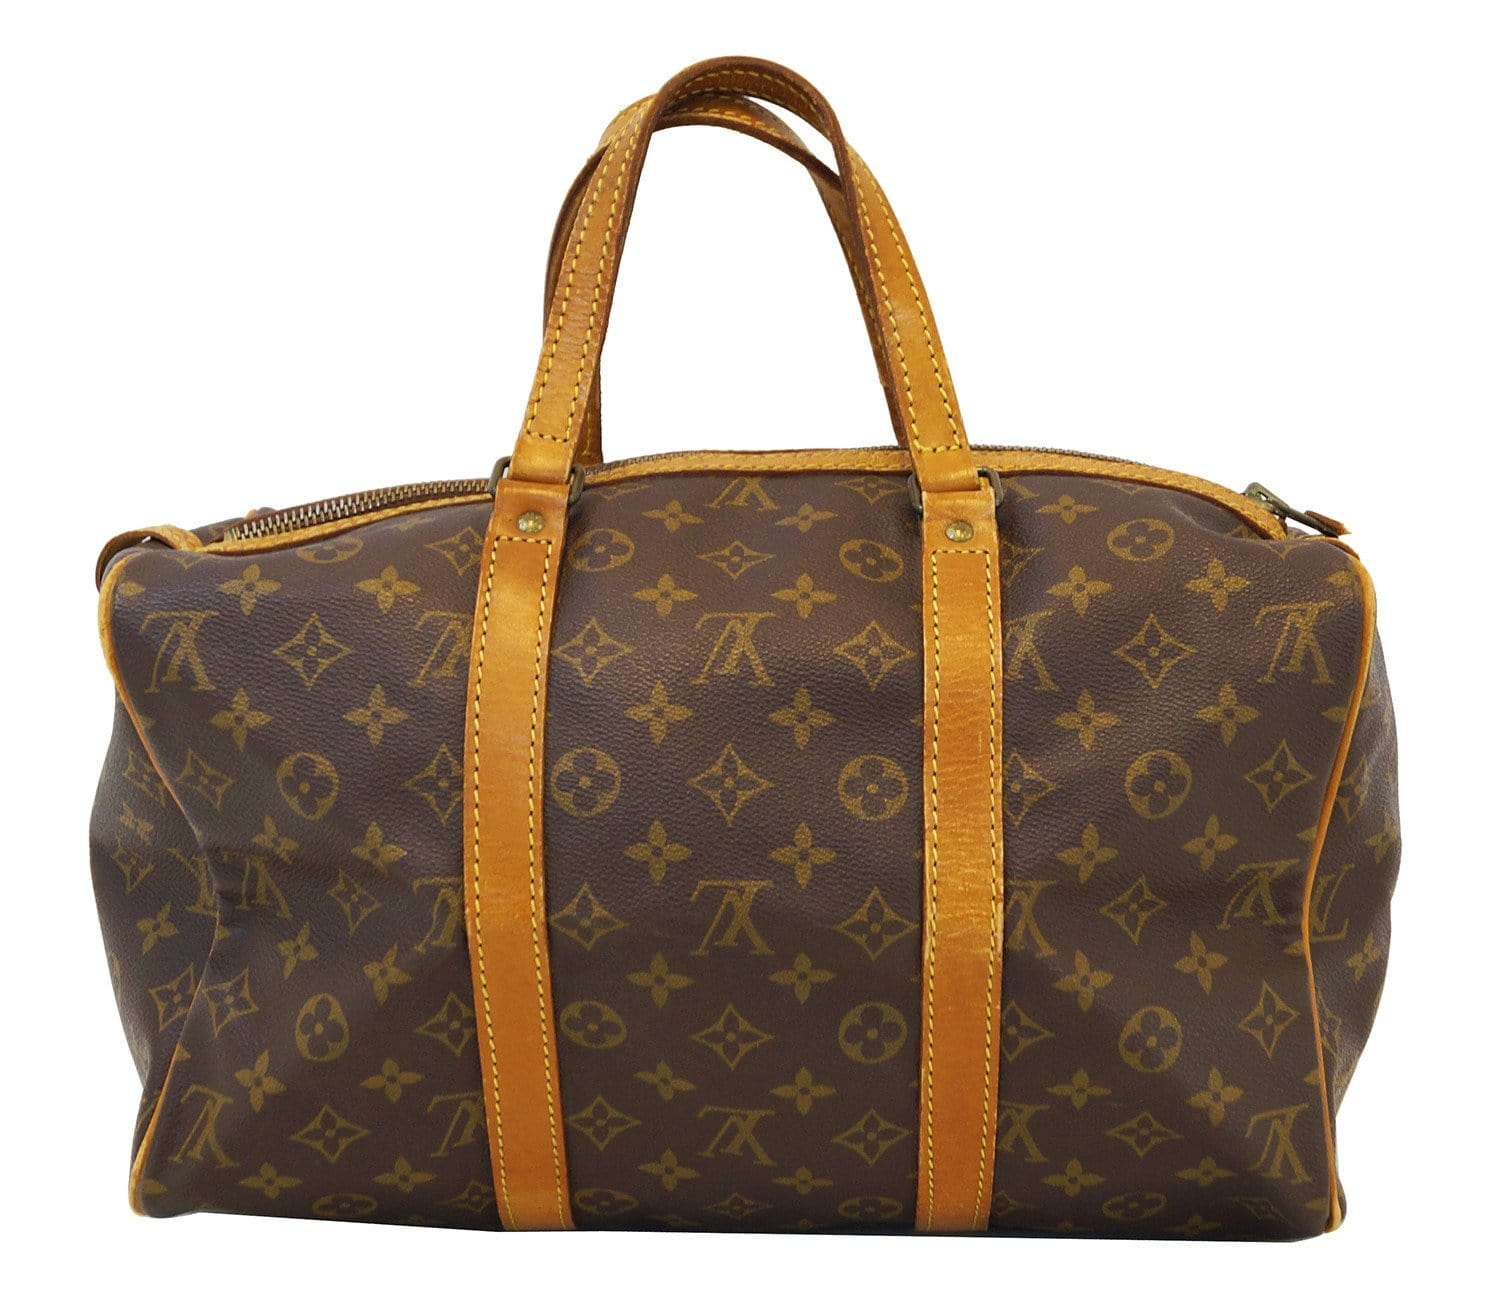 louis vuitton monogram sac souple 35 boston bag vintage. Black Bedroom Furniture Sets. Home Design Ideas